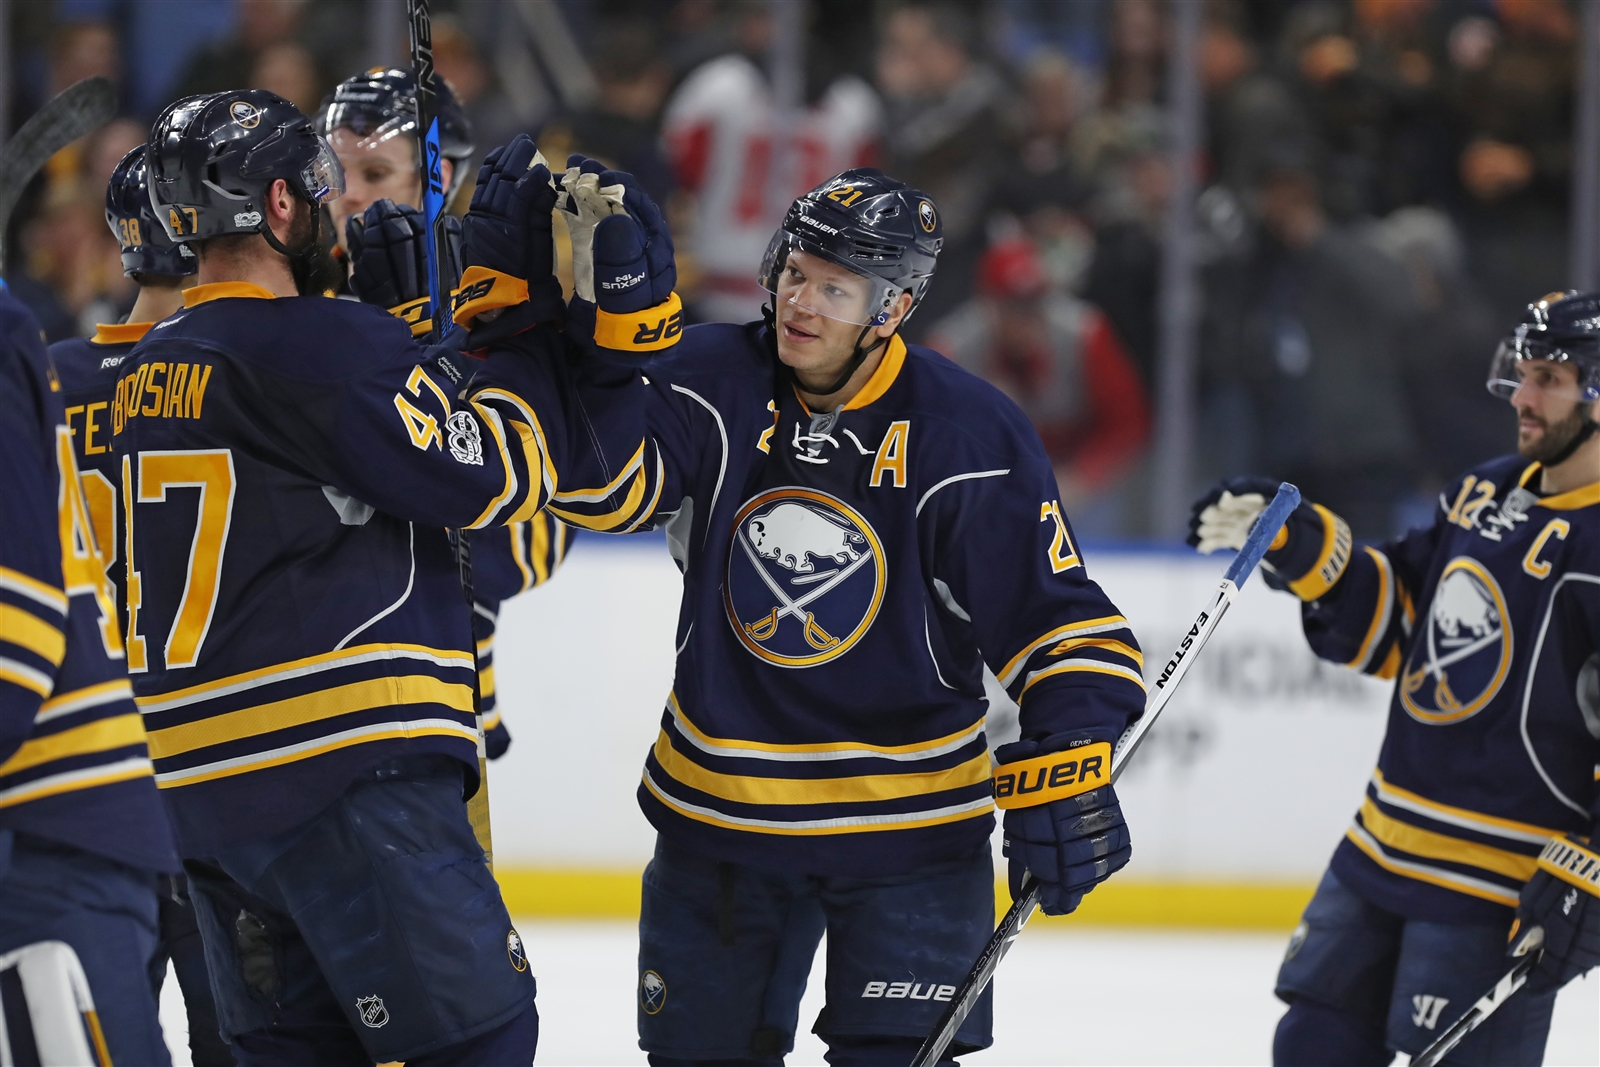 Kyle Okposo wasted no time becoming a leader on the Sabres. (Harry Scull Jr./Buffalo News)